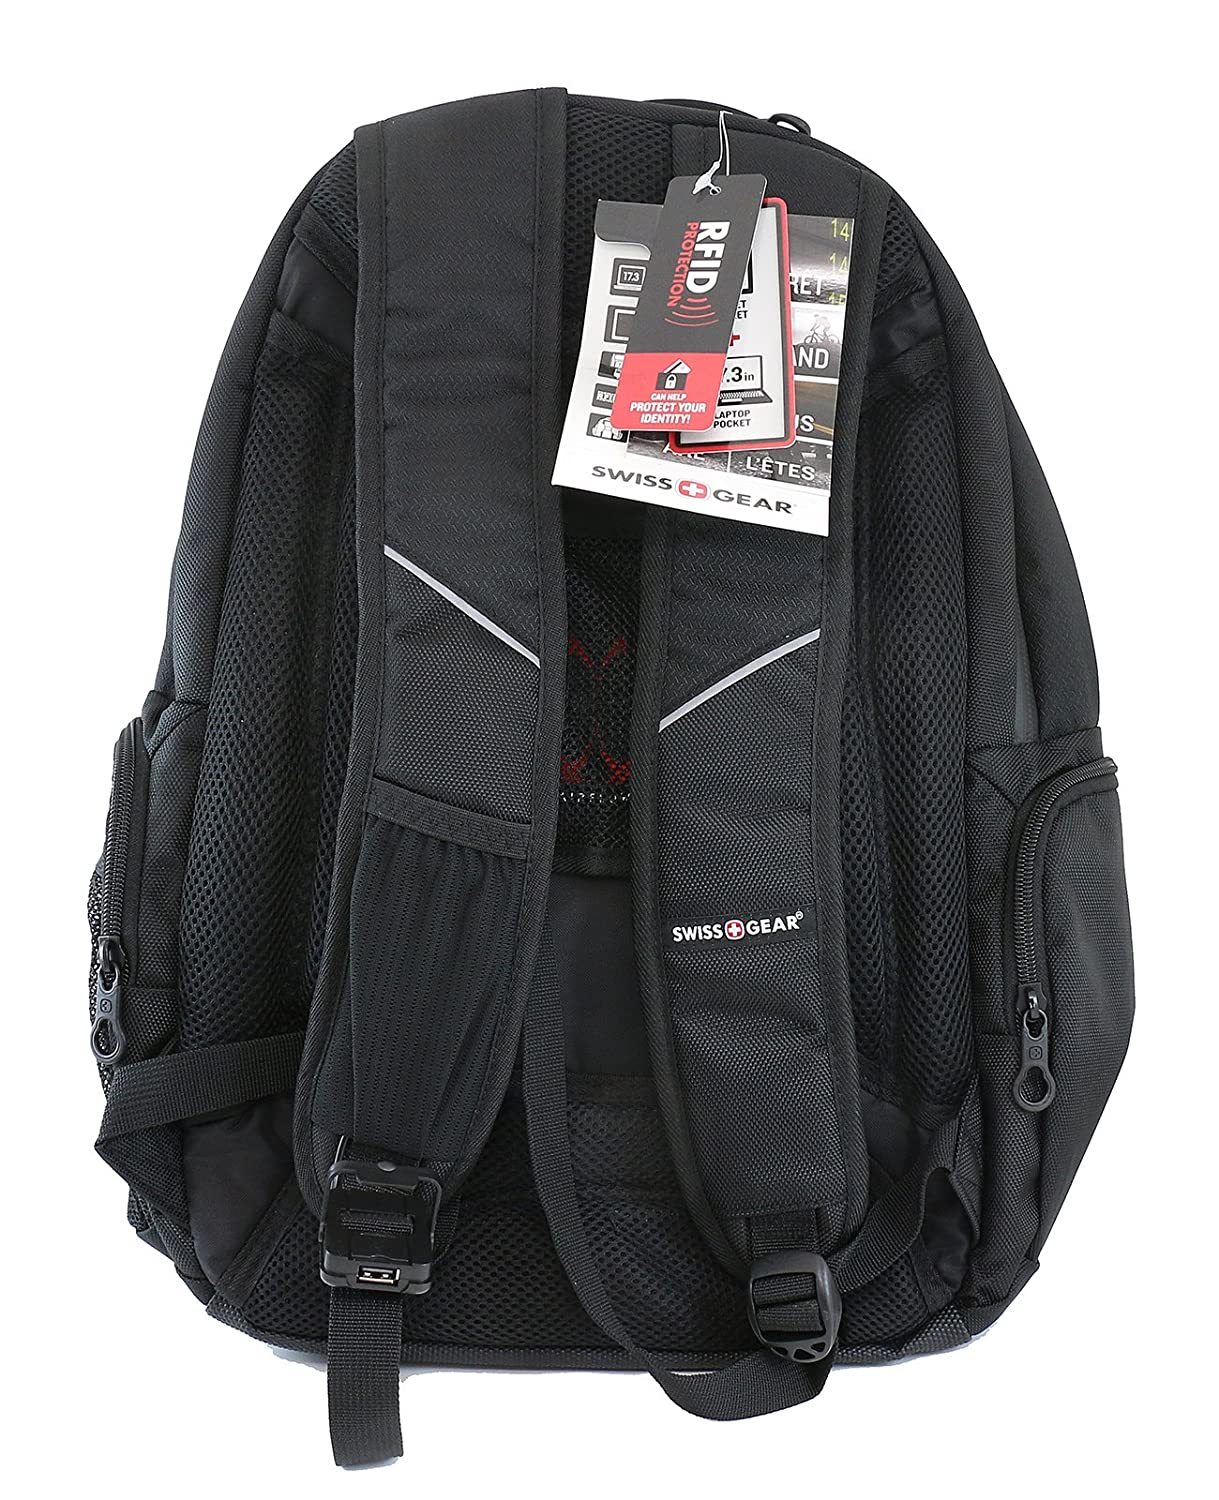 Amazon.com: Swiss Gear - Laptop and Tablet Backpack With USB Cable Integration and Fits Most 17.3